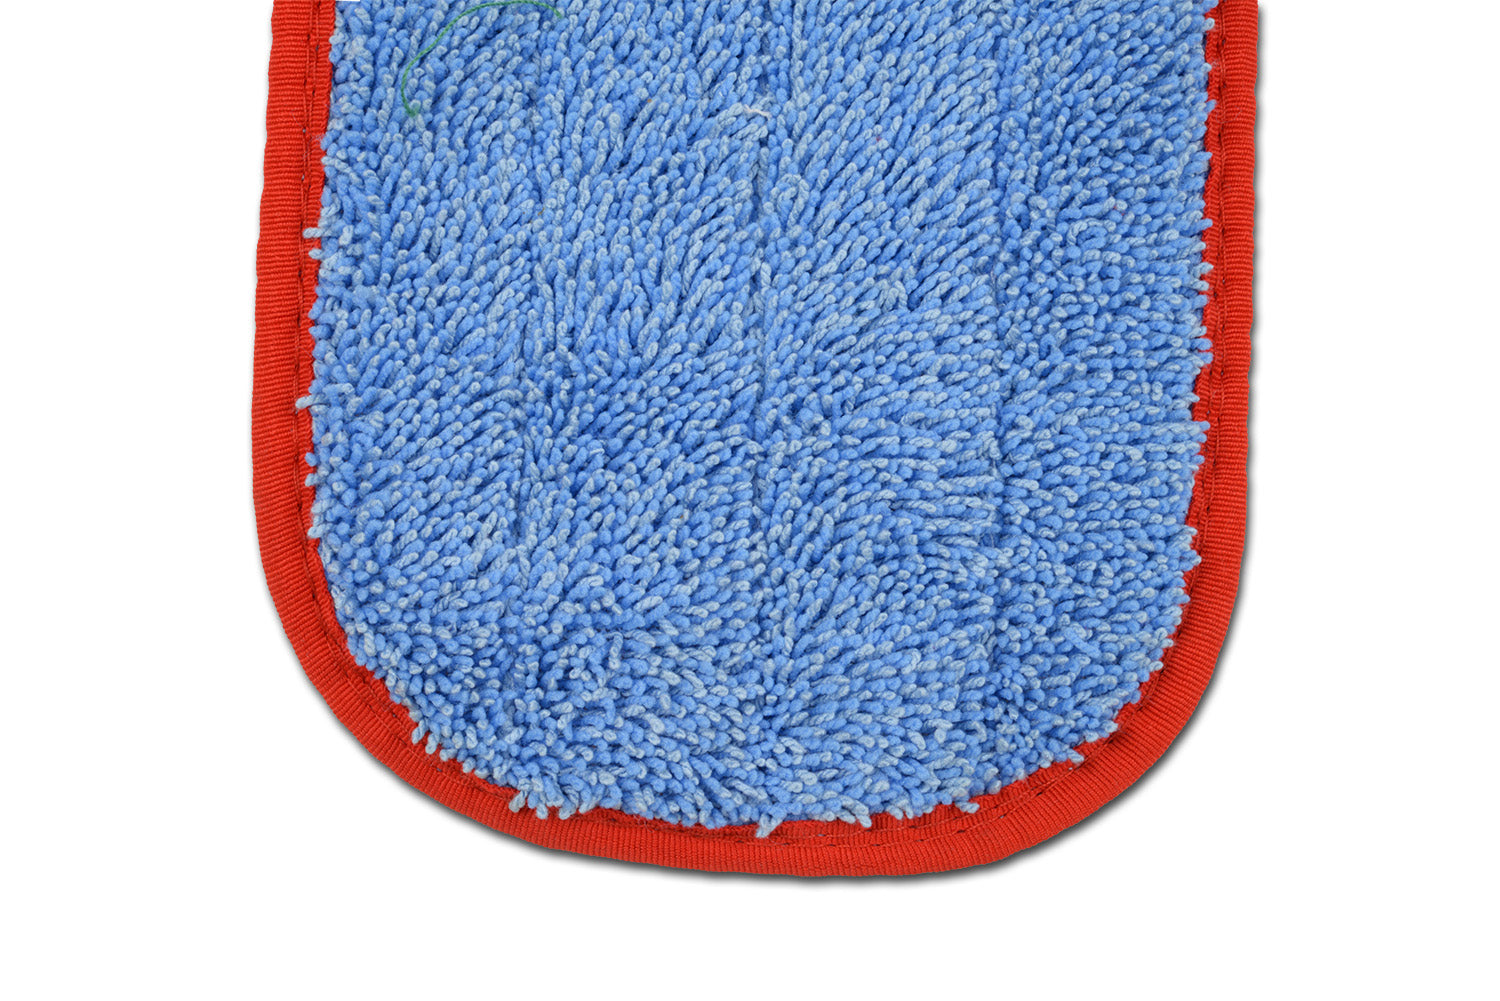 MWMCC-18 Inch color Coded Microfiber Wet Mop Pads Close Up